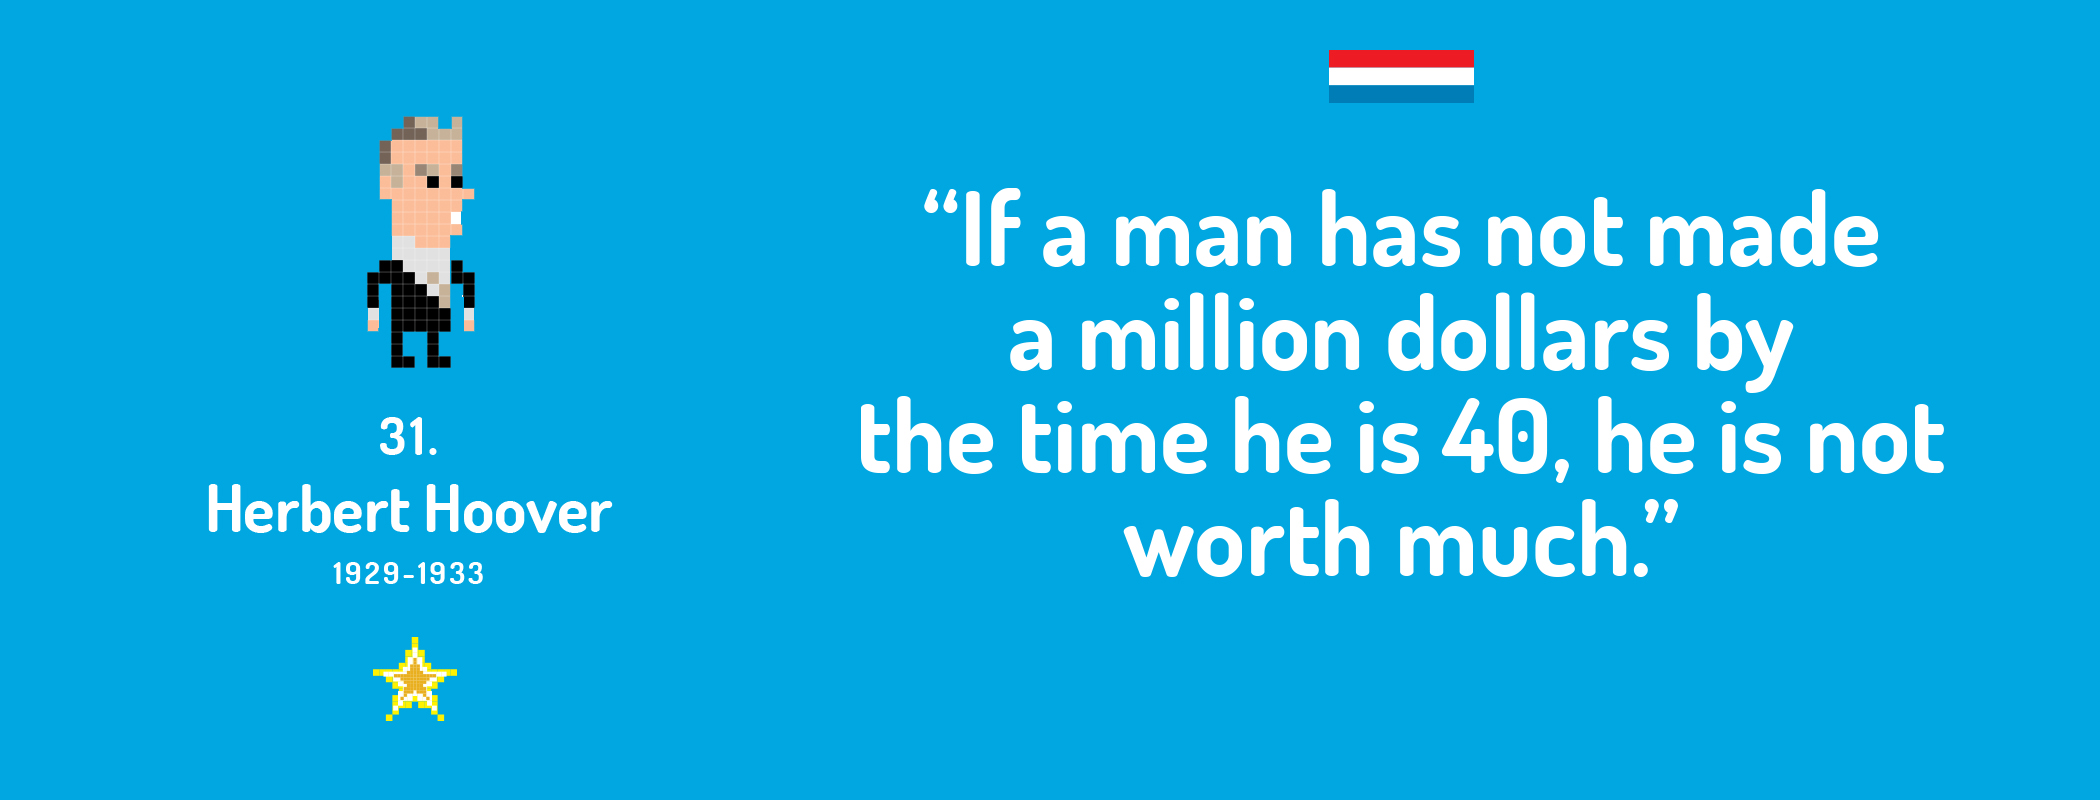 If a man has not made a million dollars by the time he is 40, he is not worth much.